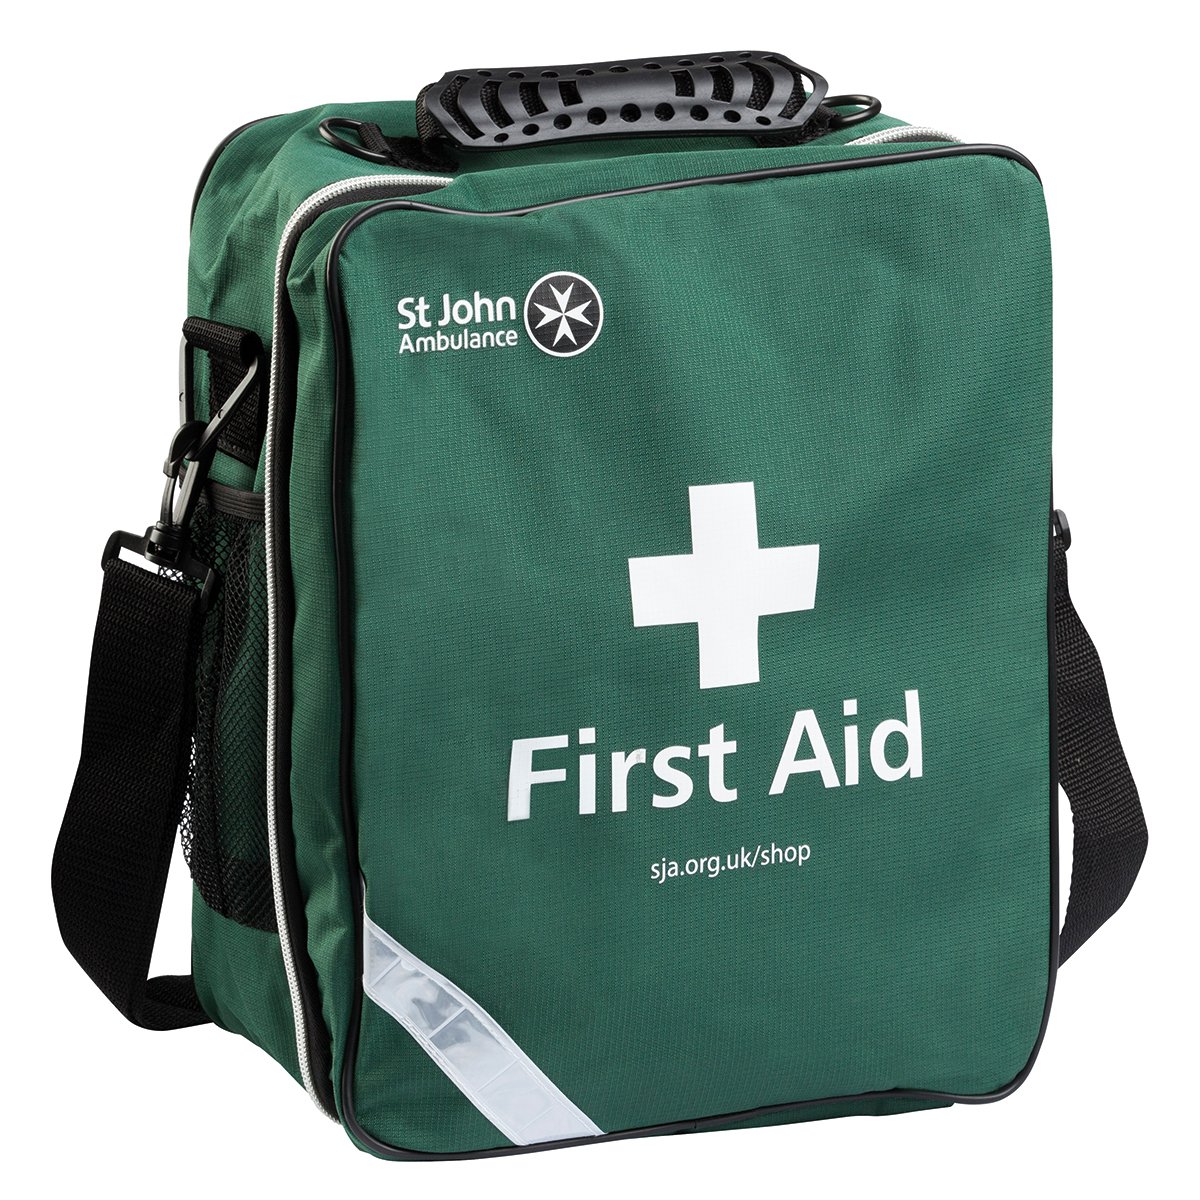 Super First Aid Responder First Aid Kit, Large